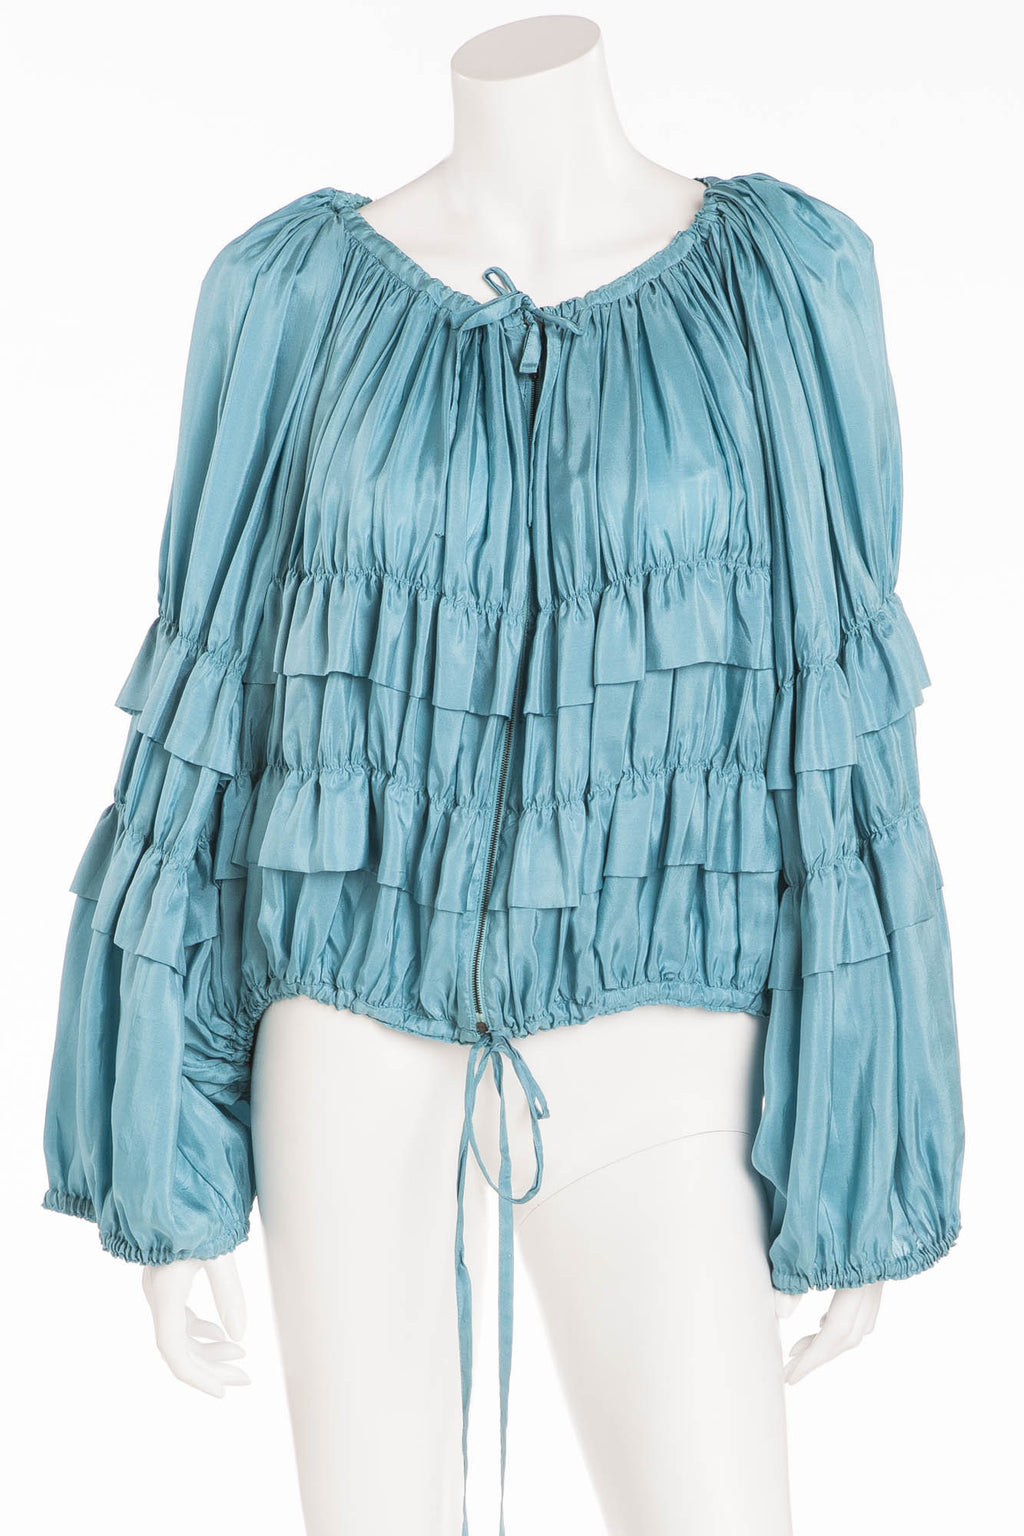 Jean Paul Gaultier - Turquoise Shirt with Ruffles - S